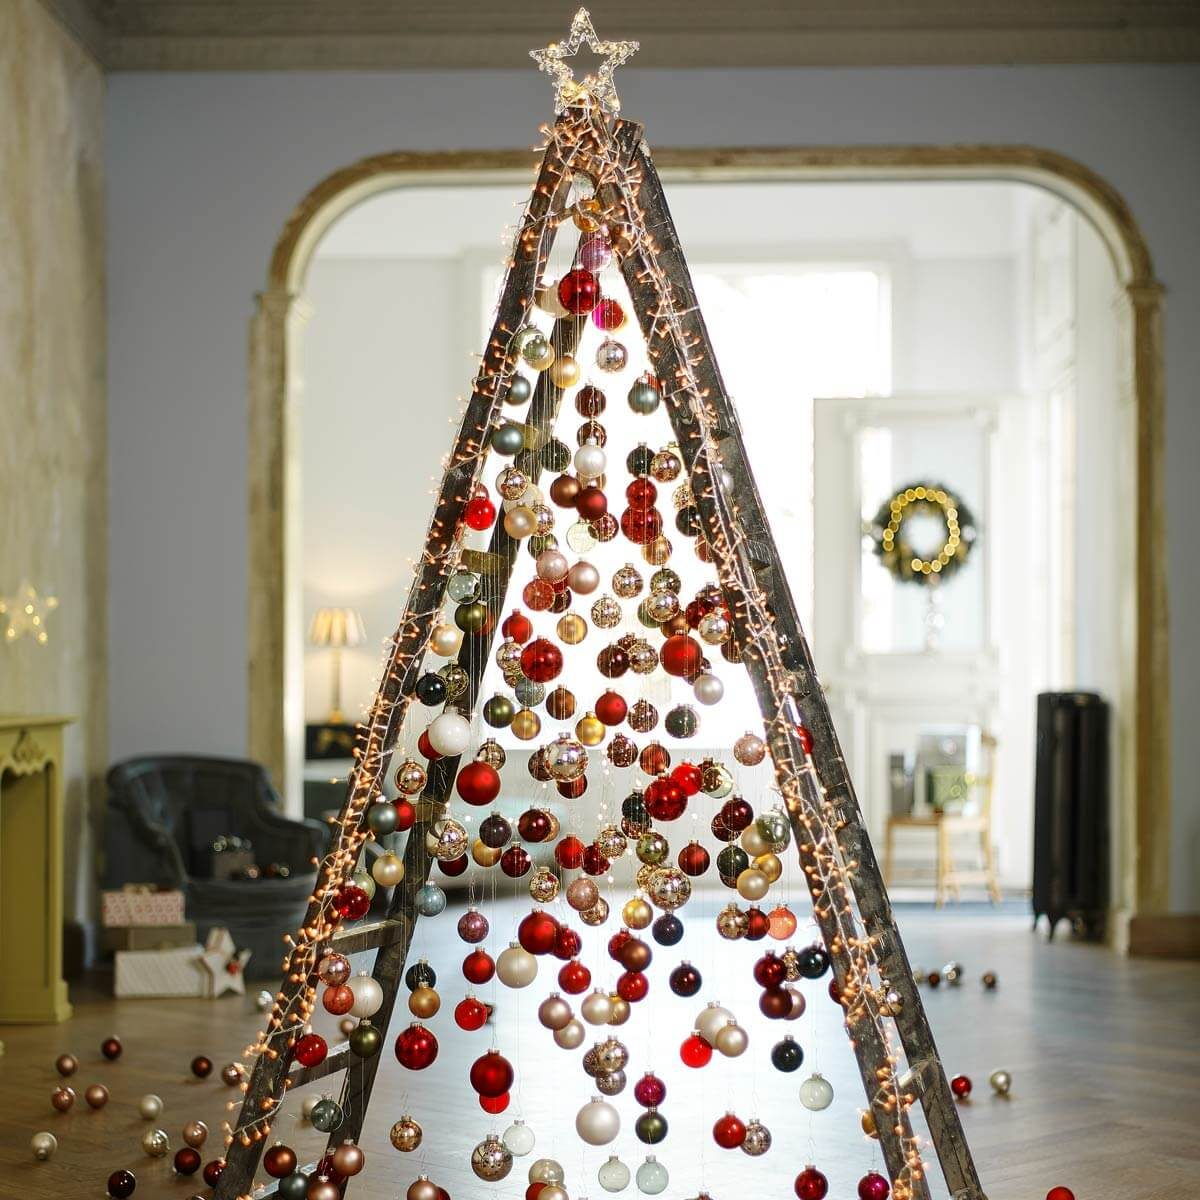 25 100 ladder tree - Christmas Ladder Decor